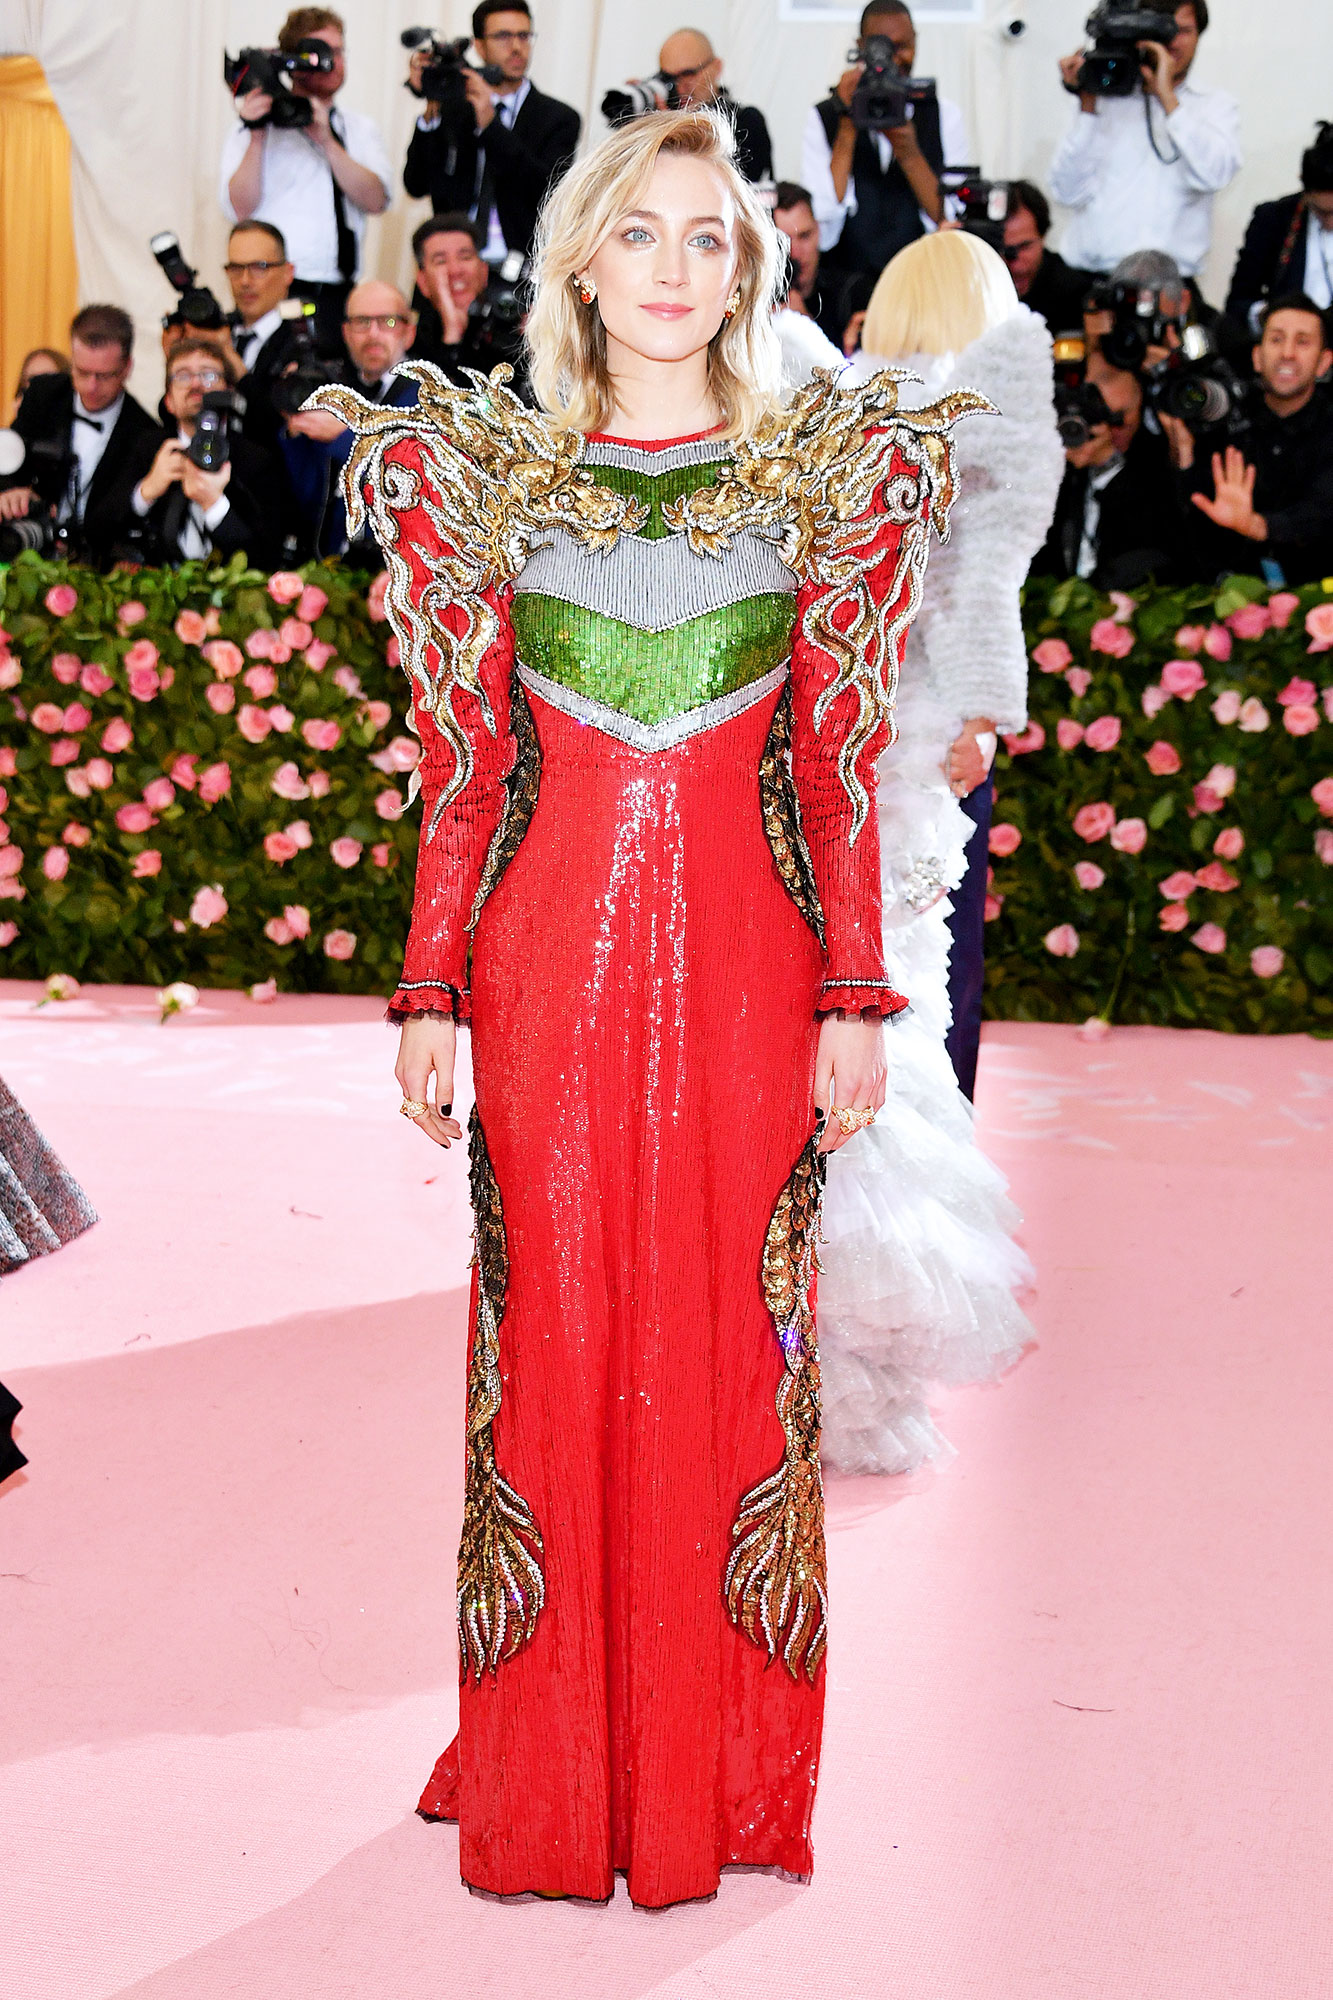 Saoirse Ronan met gala 2019 - Wearing a dragon-adorned Gucci gown.